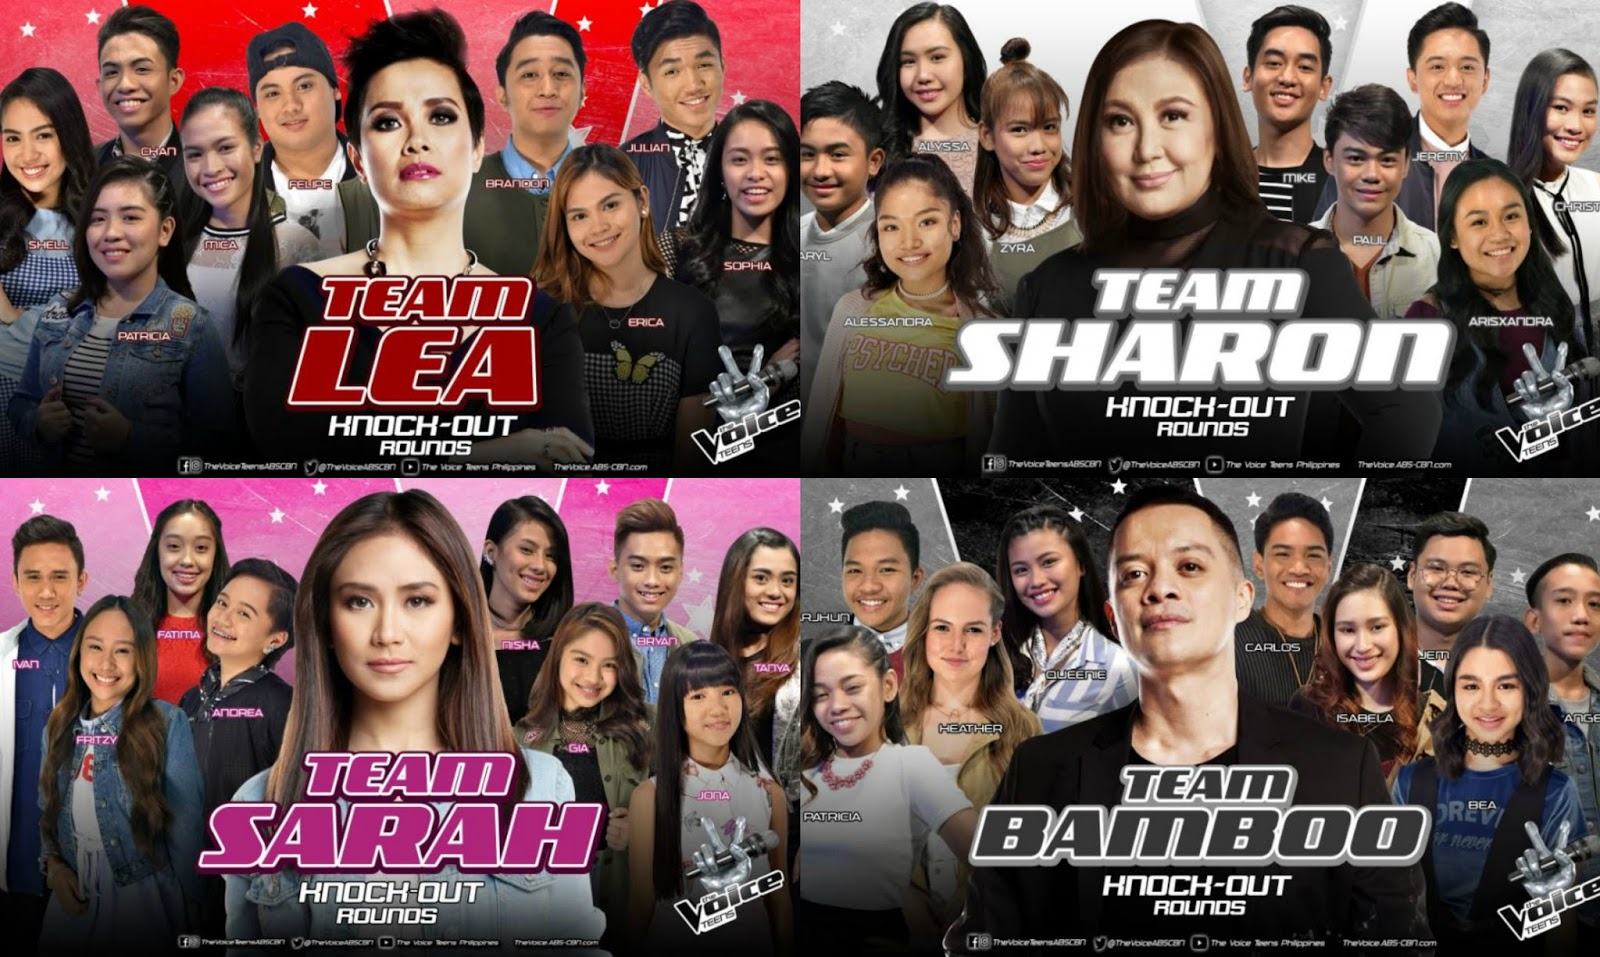 """The Voice Teens"" artists clash in Knockout Rounds"